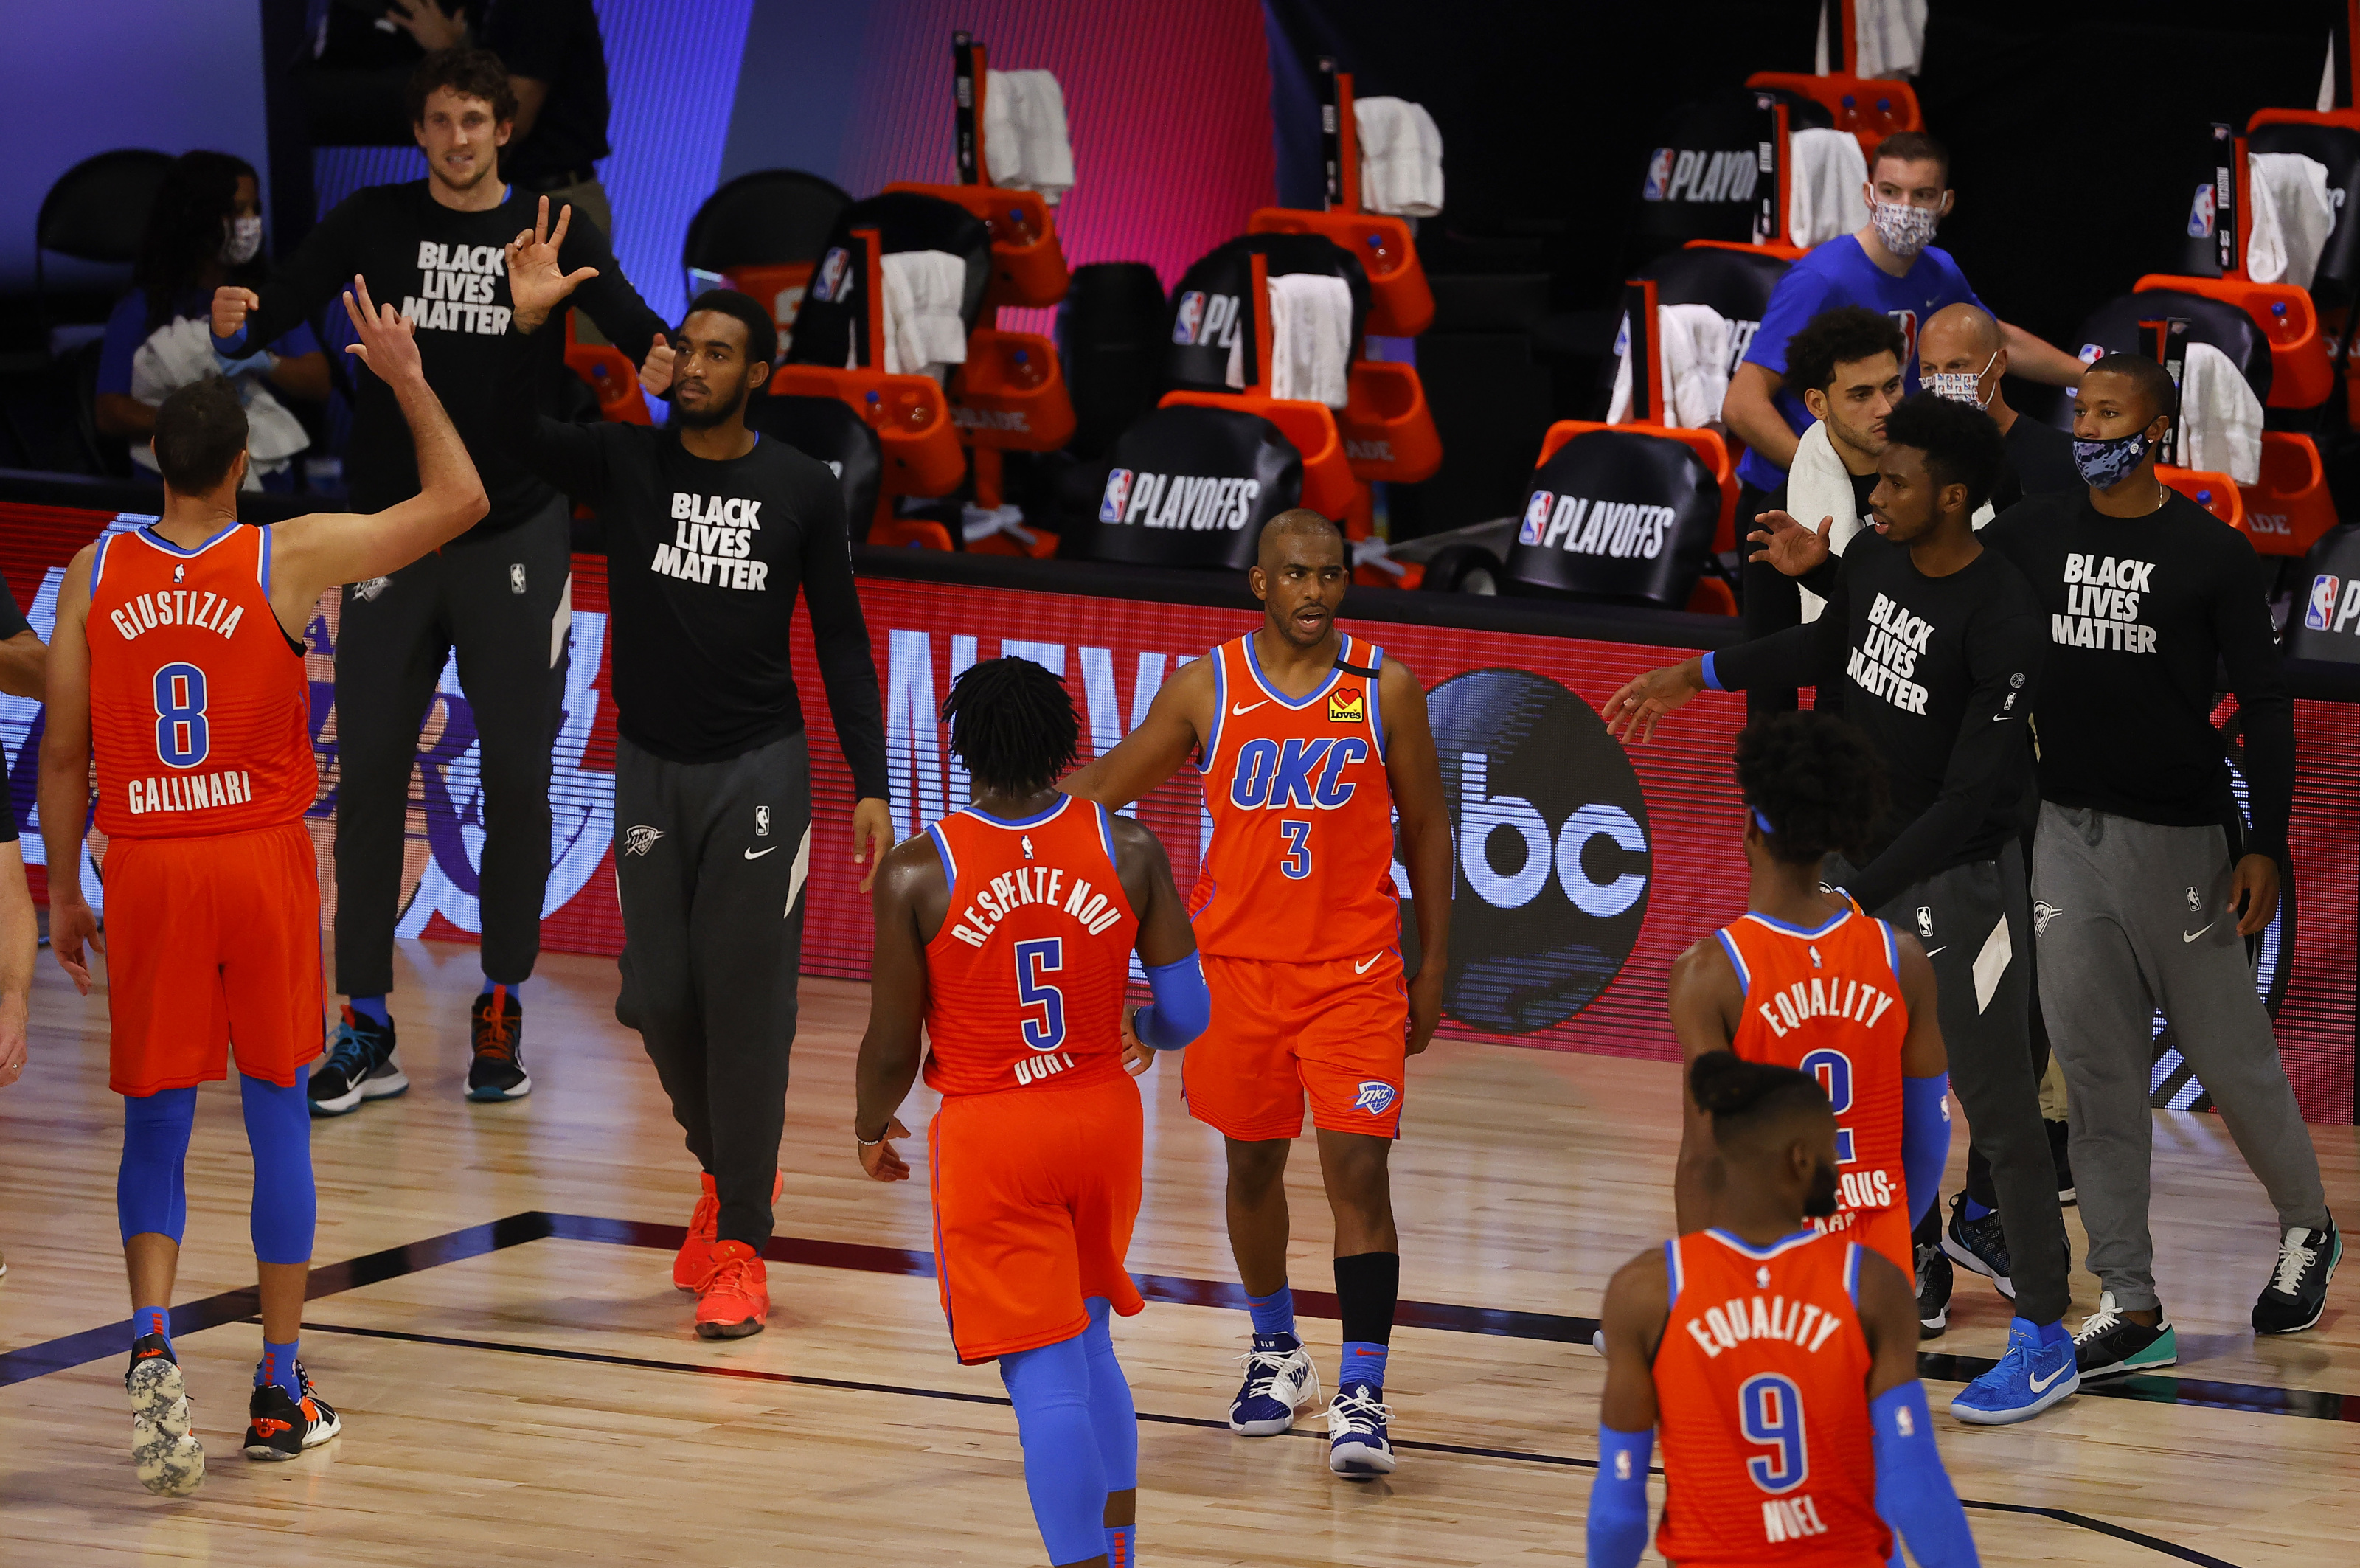 OKC Thunder grinds past Rockets to take Game 3 in overtime - Grades